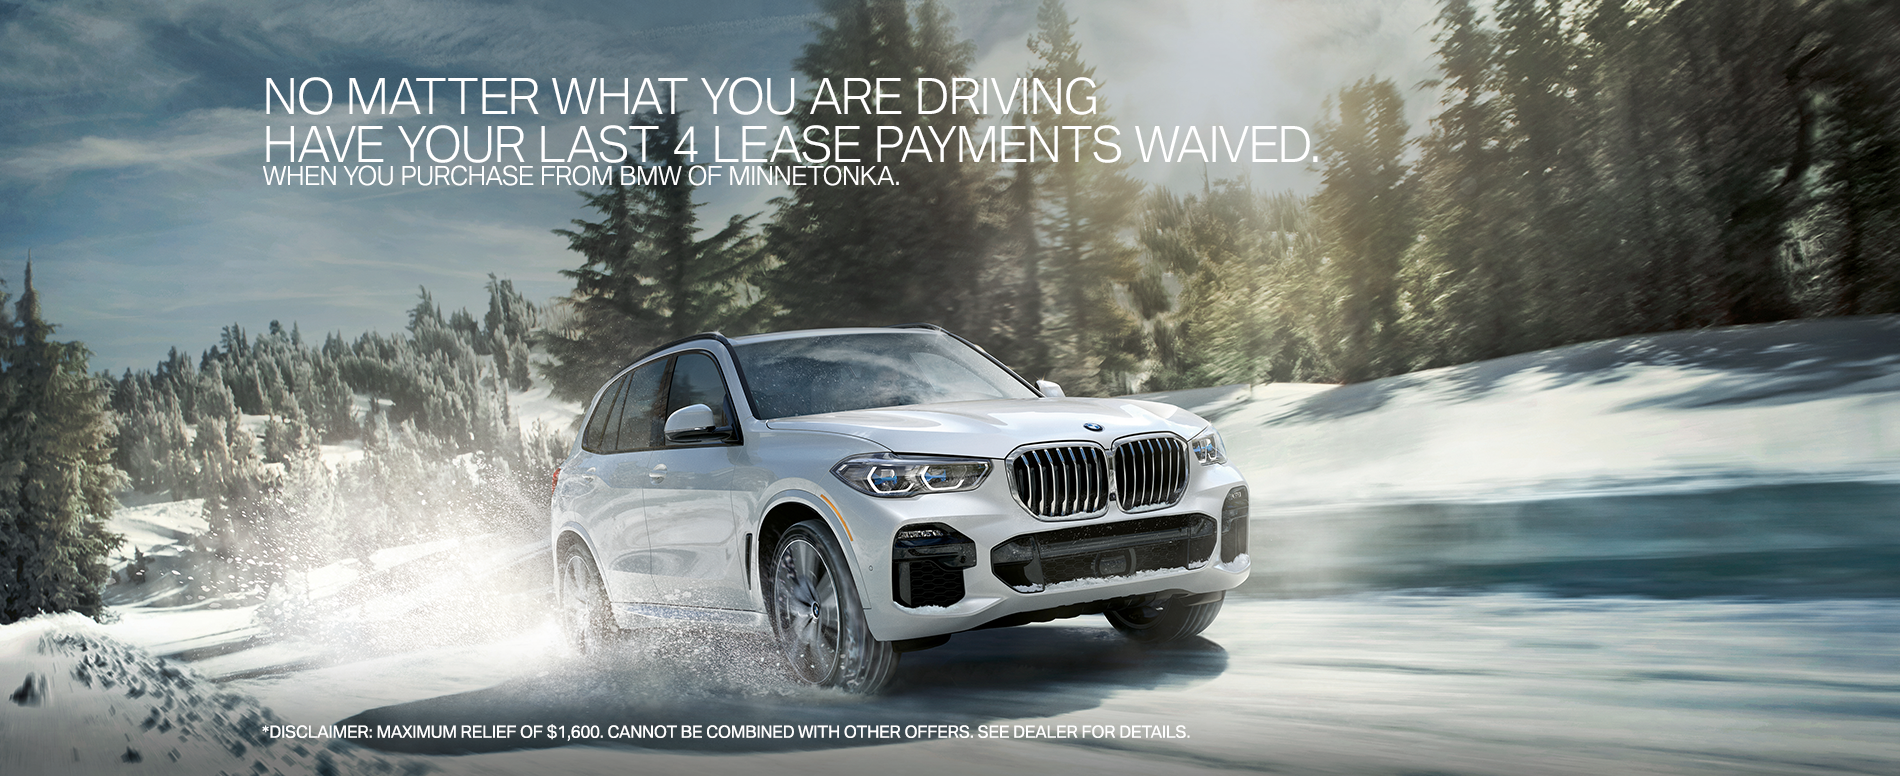 BMW of Minnetonka Conquest Offer Waive Last 4 Lease Payments